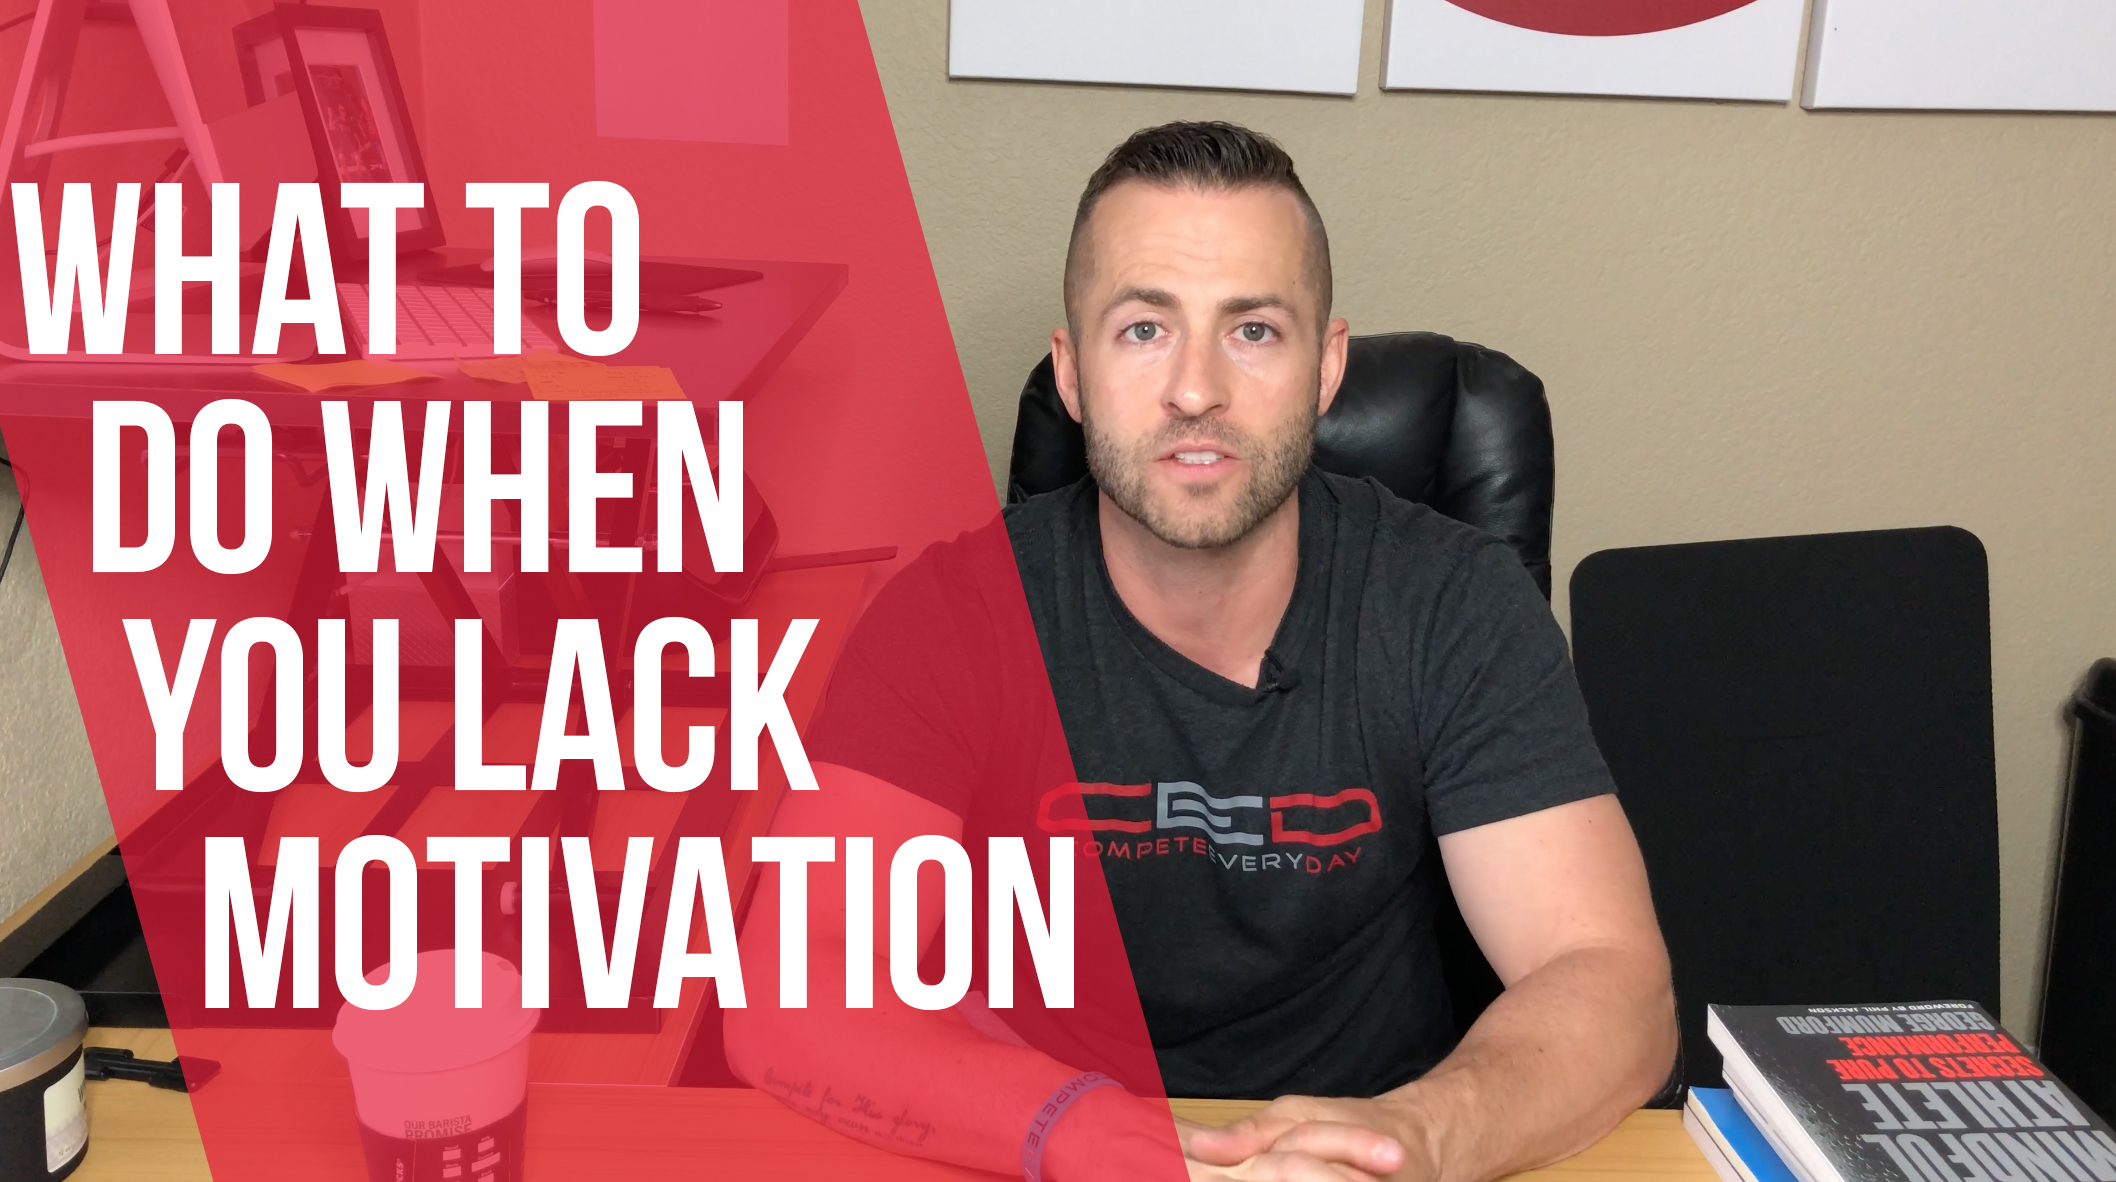 Finding Motivation When You're In a Rut